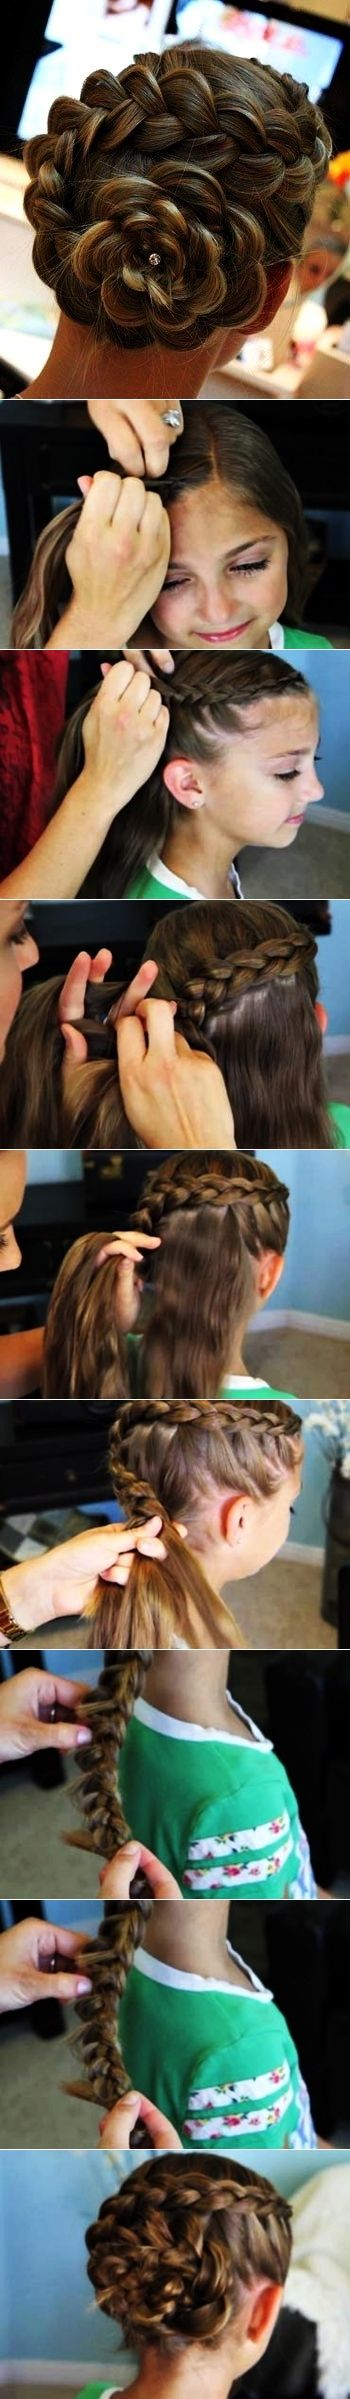 Rose braid- amazing